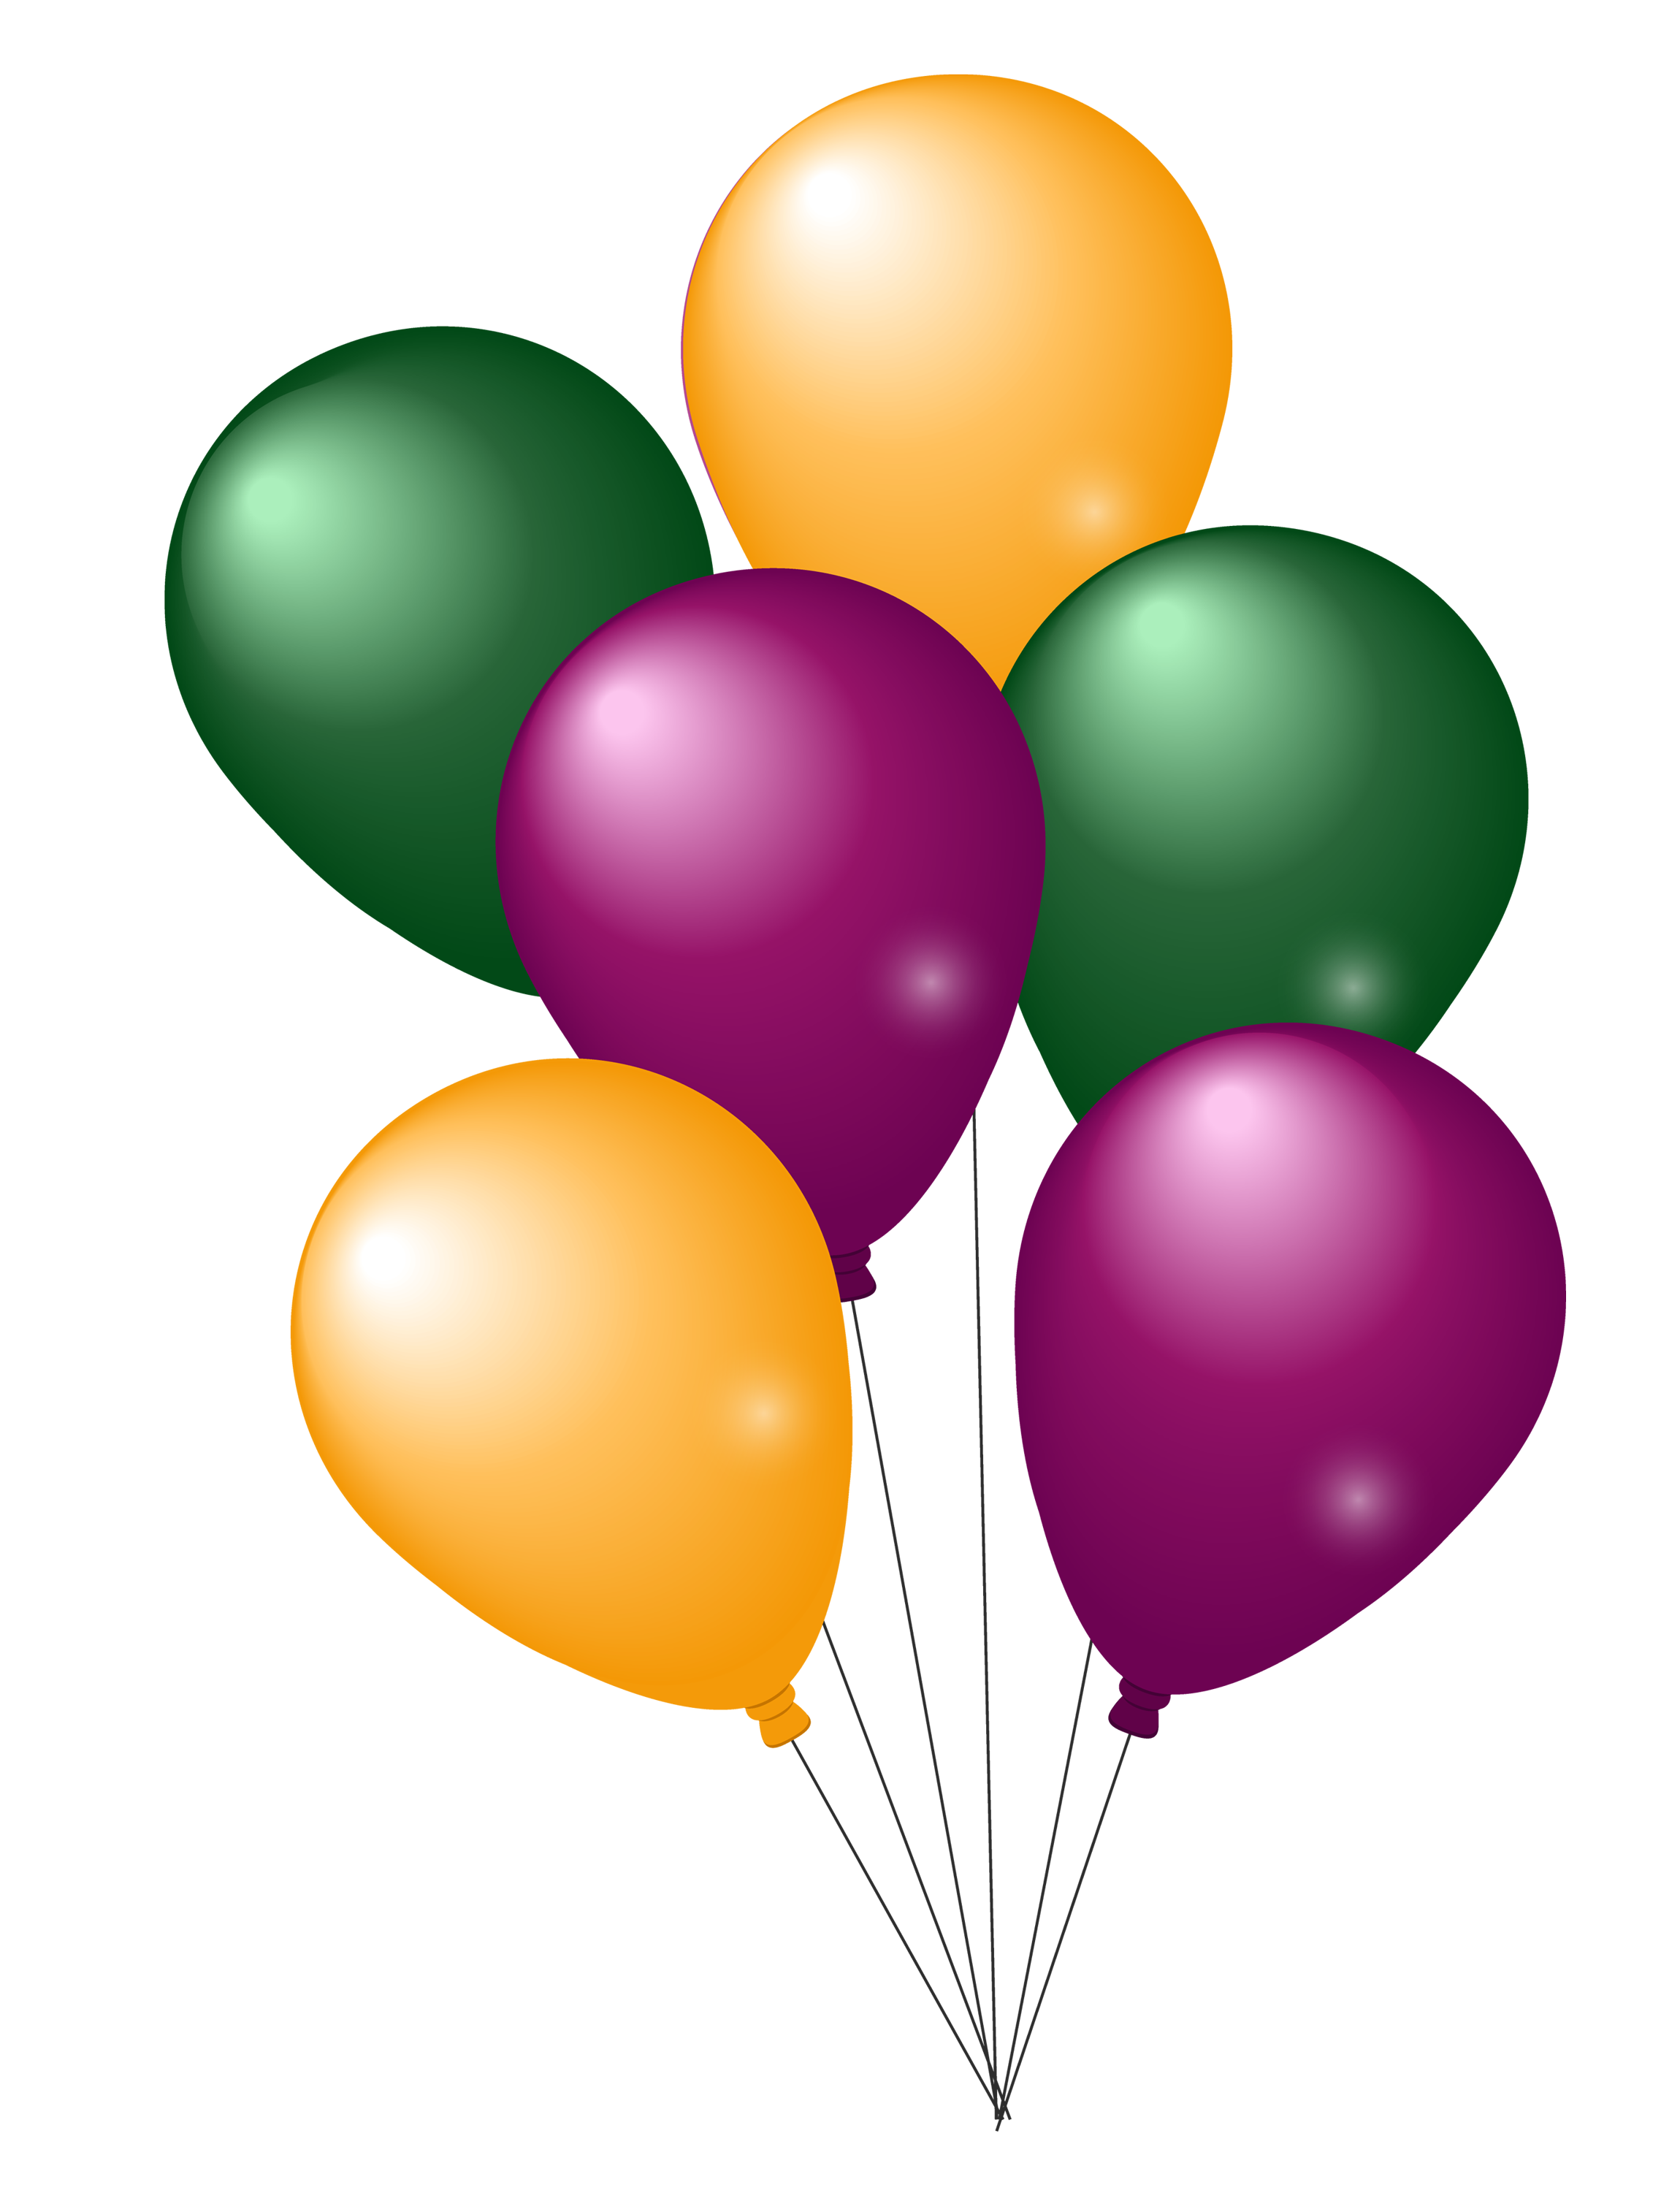 colorful party balloons png image pngpix #9337